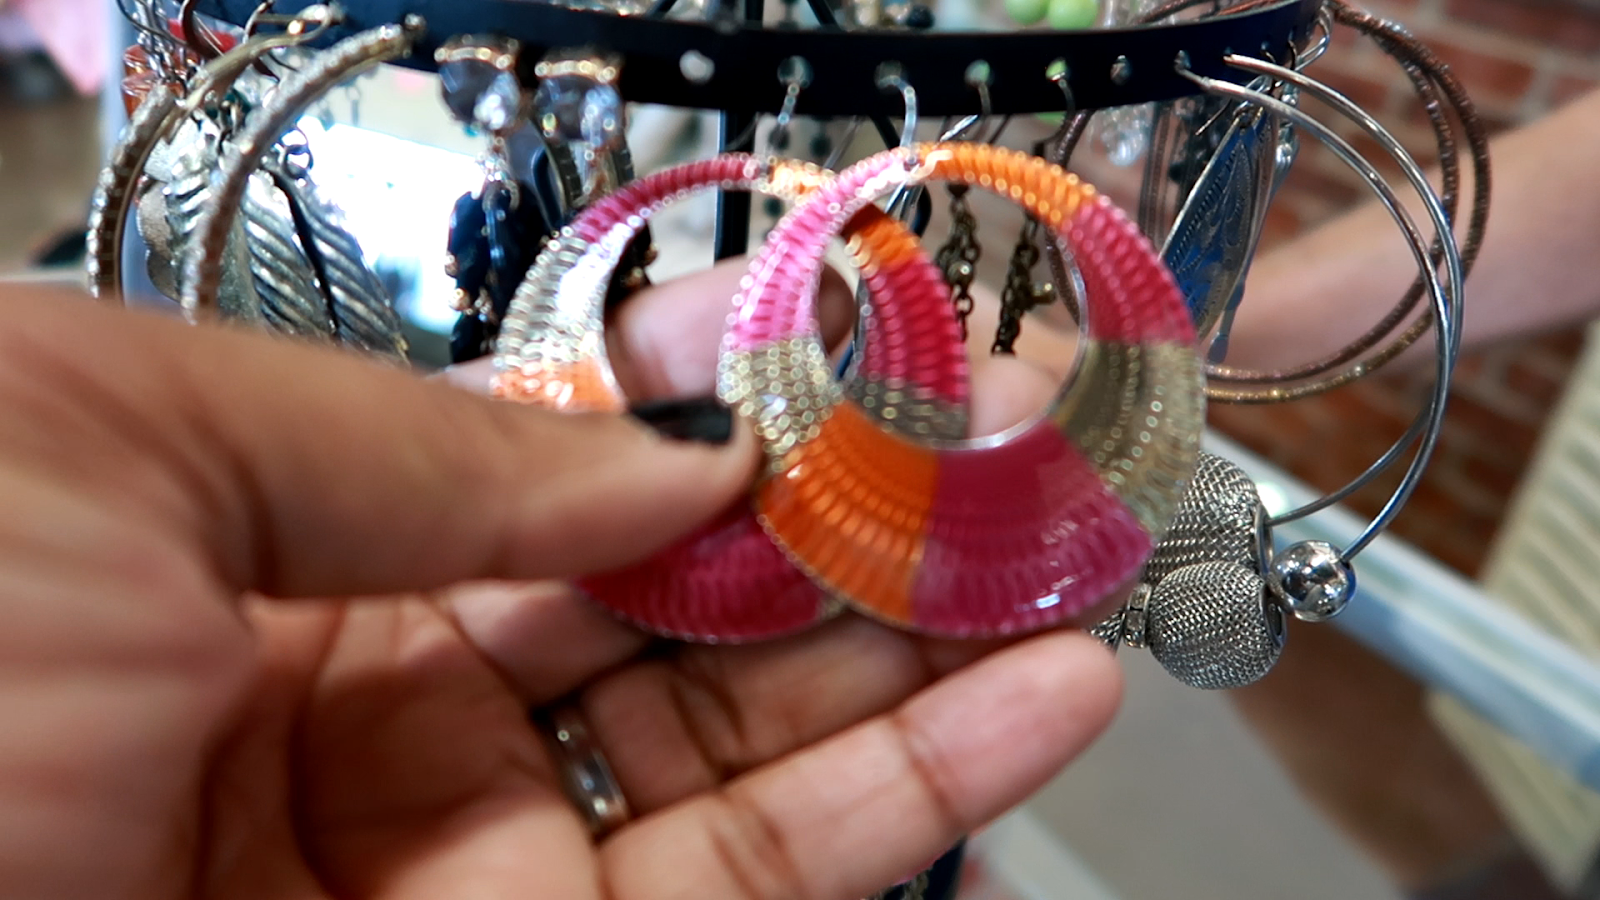 Image: Woman trying on Hippie Earrings at second hand store